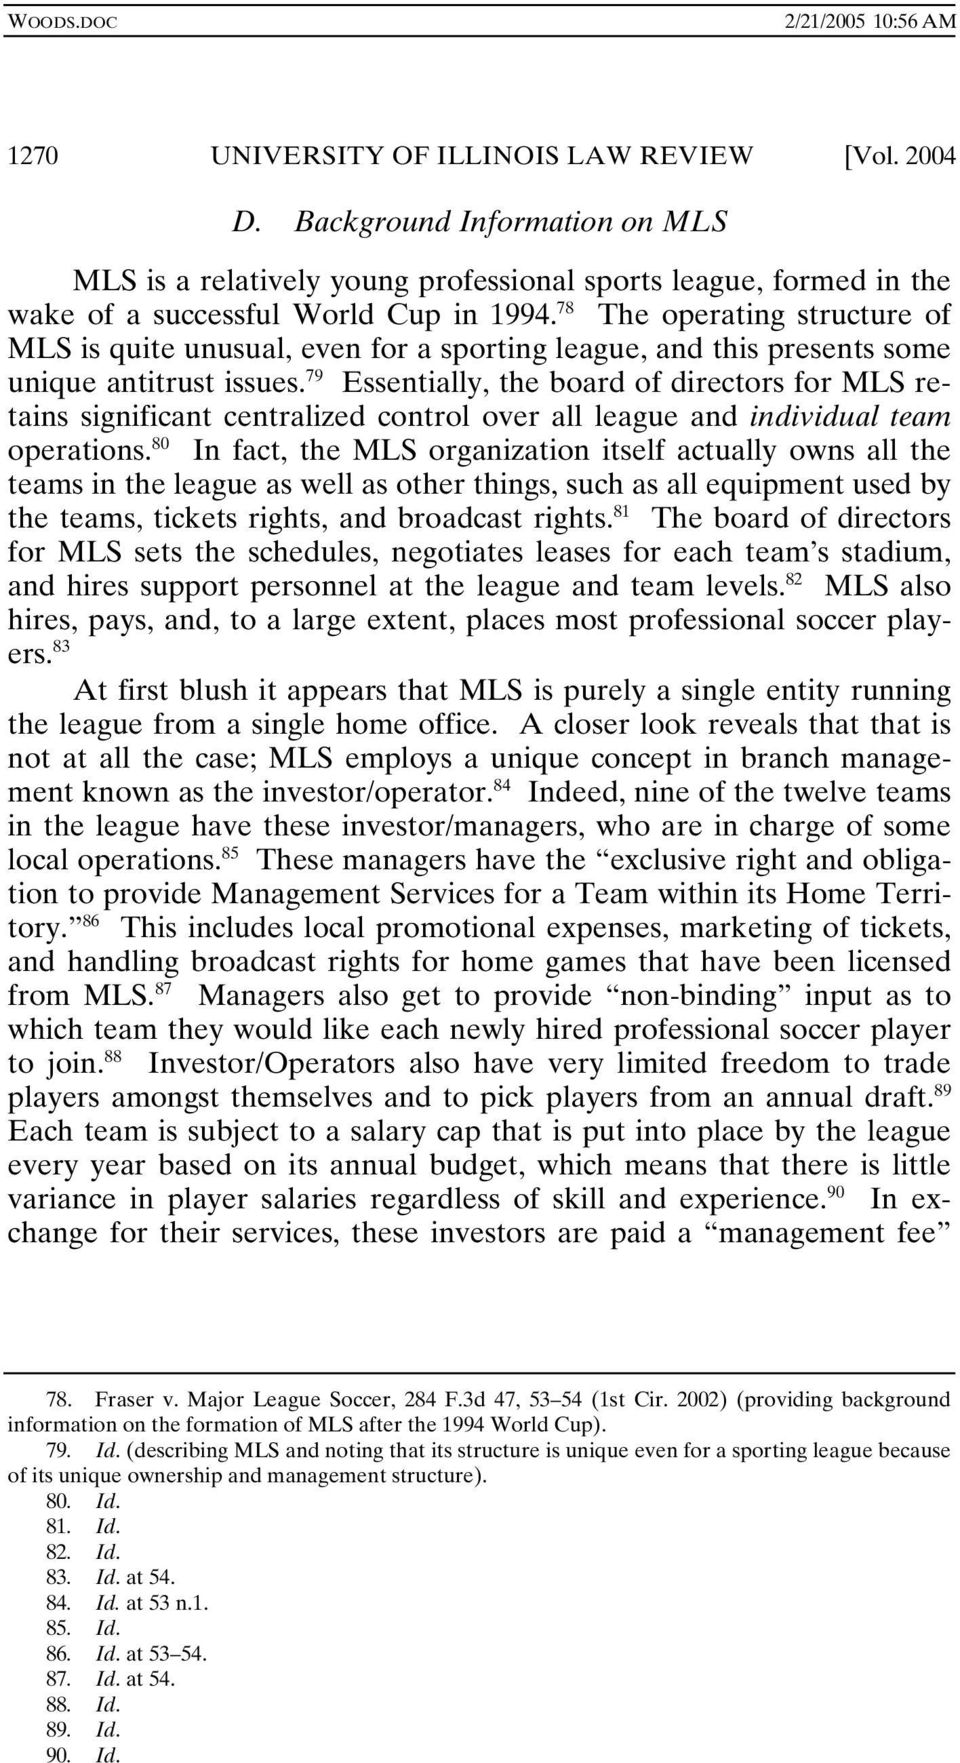 79 Essentially, the board of directors for MLS retains significant centralized control over all league and individual team operations.